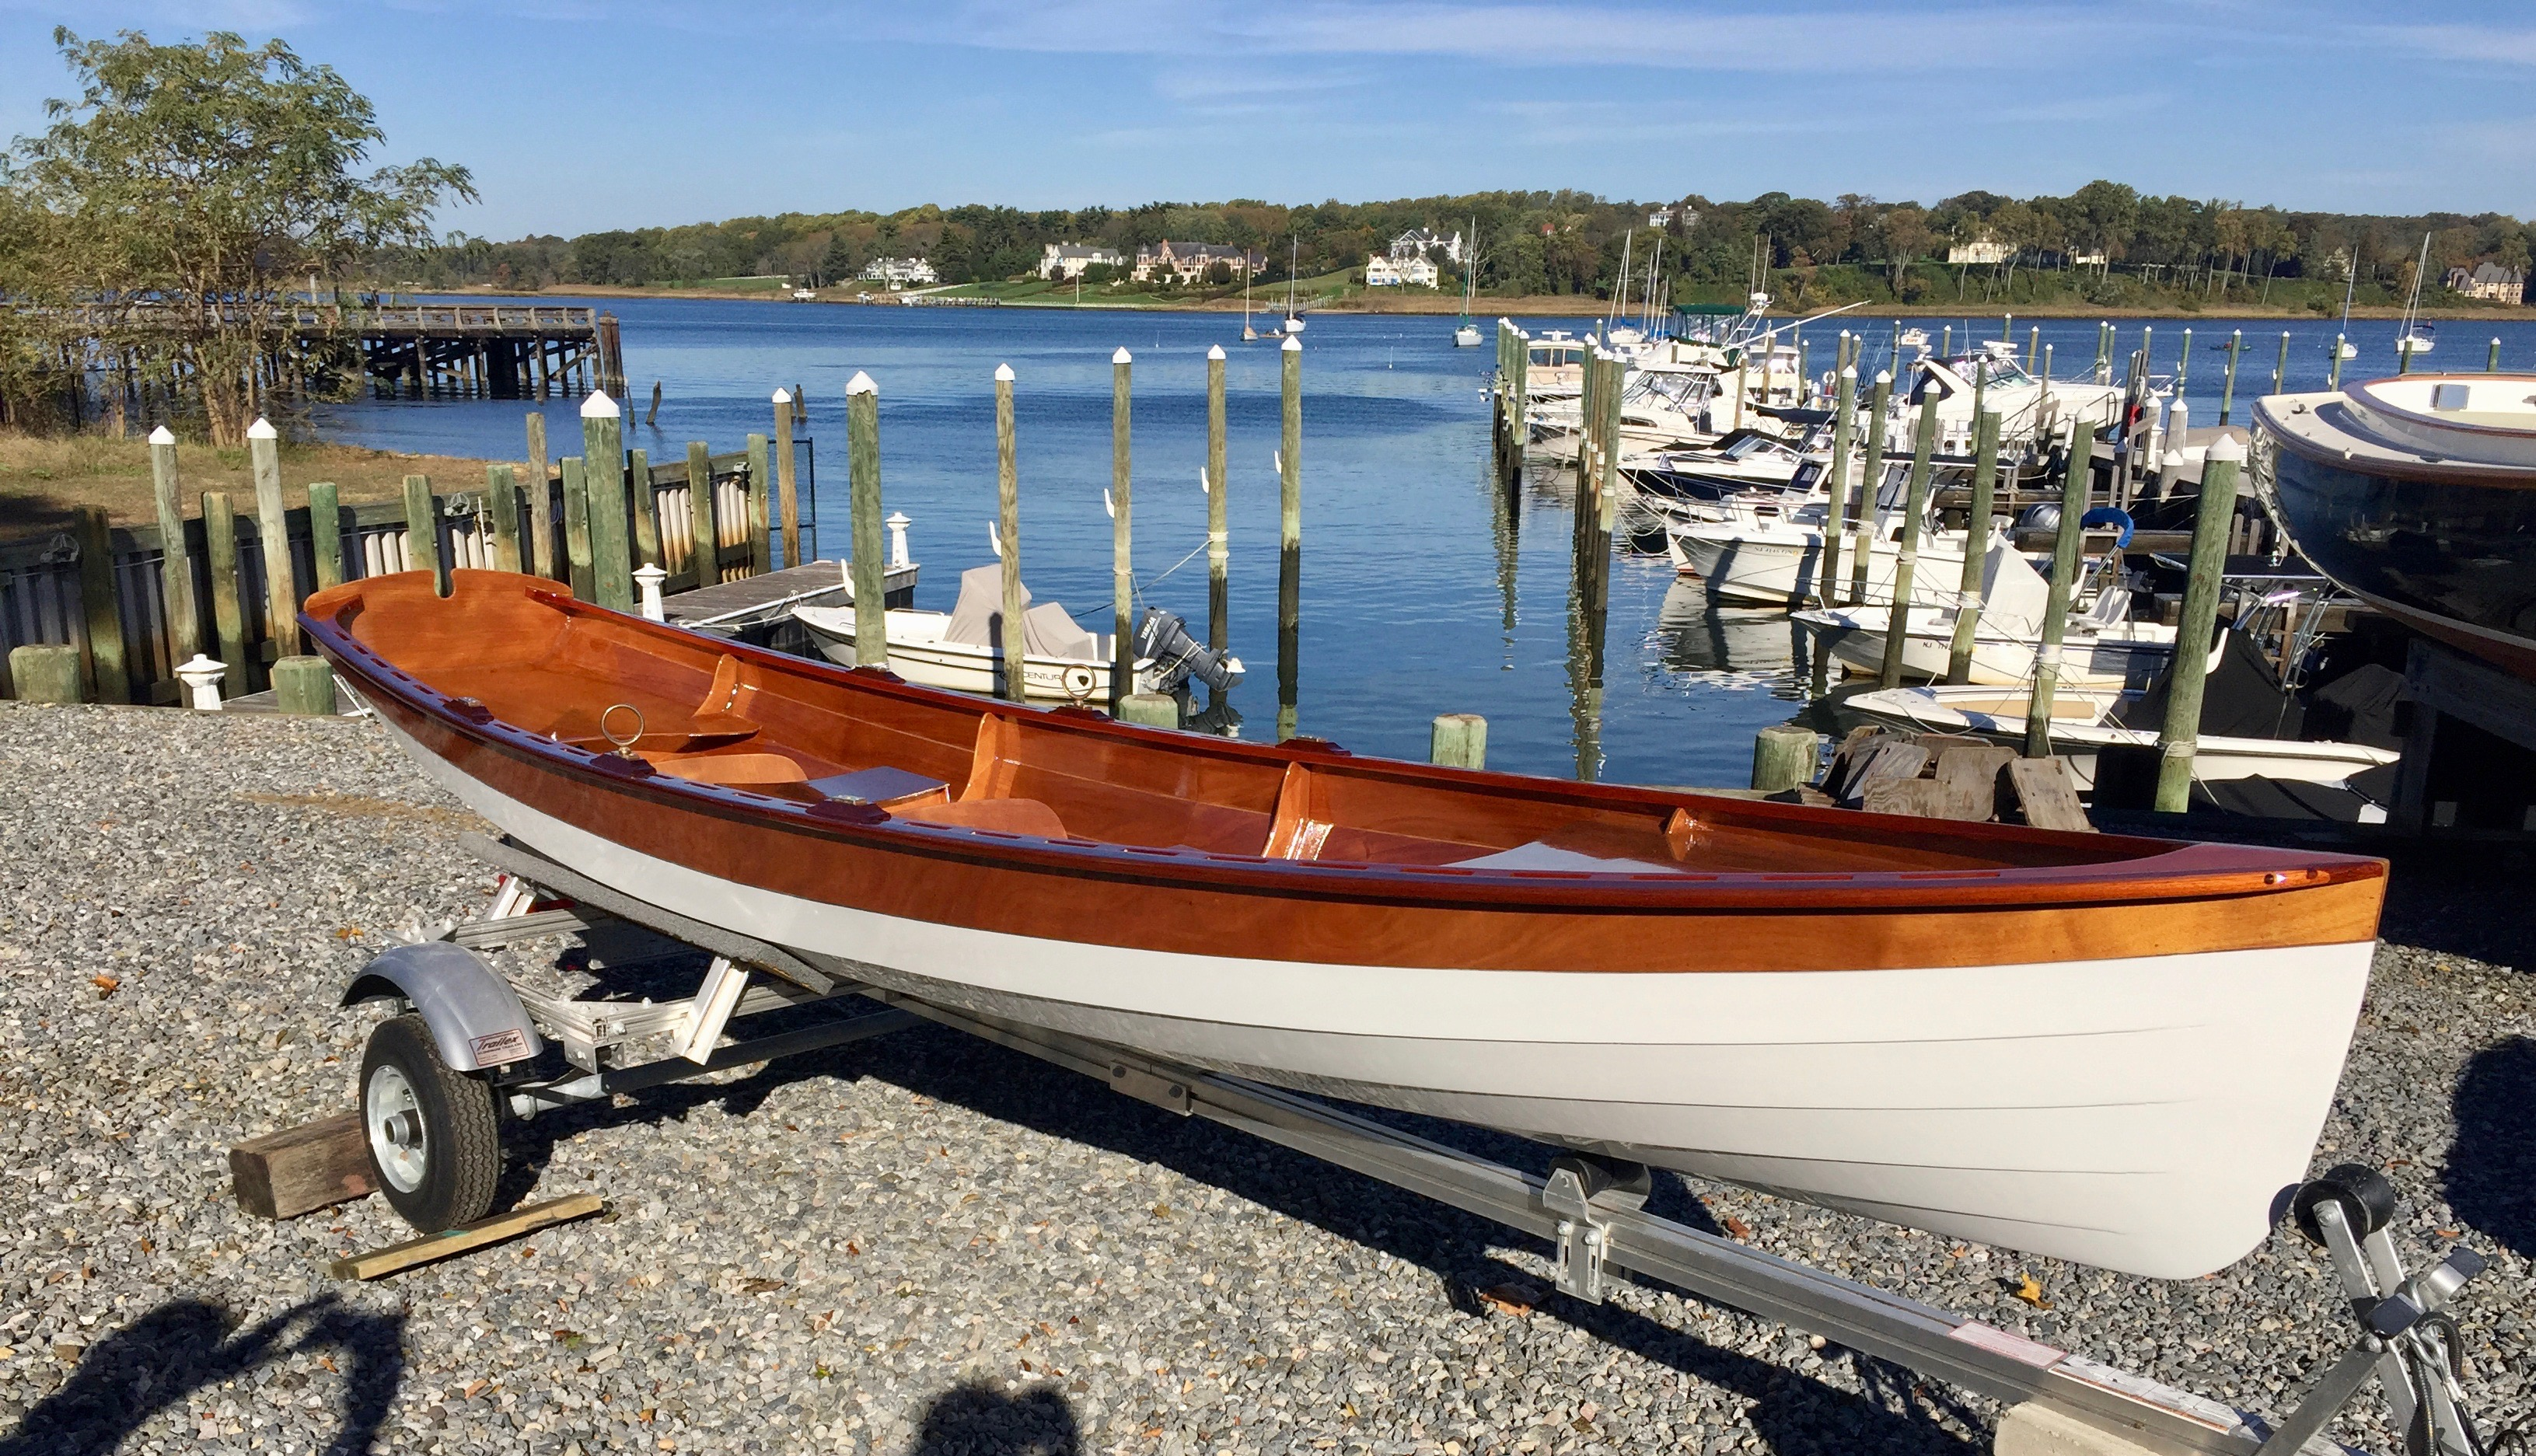 Chester Yawl by Eric D